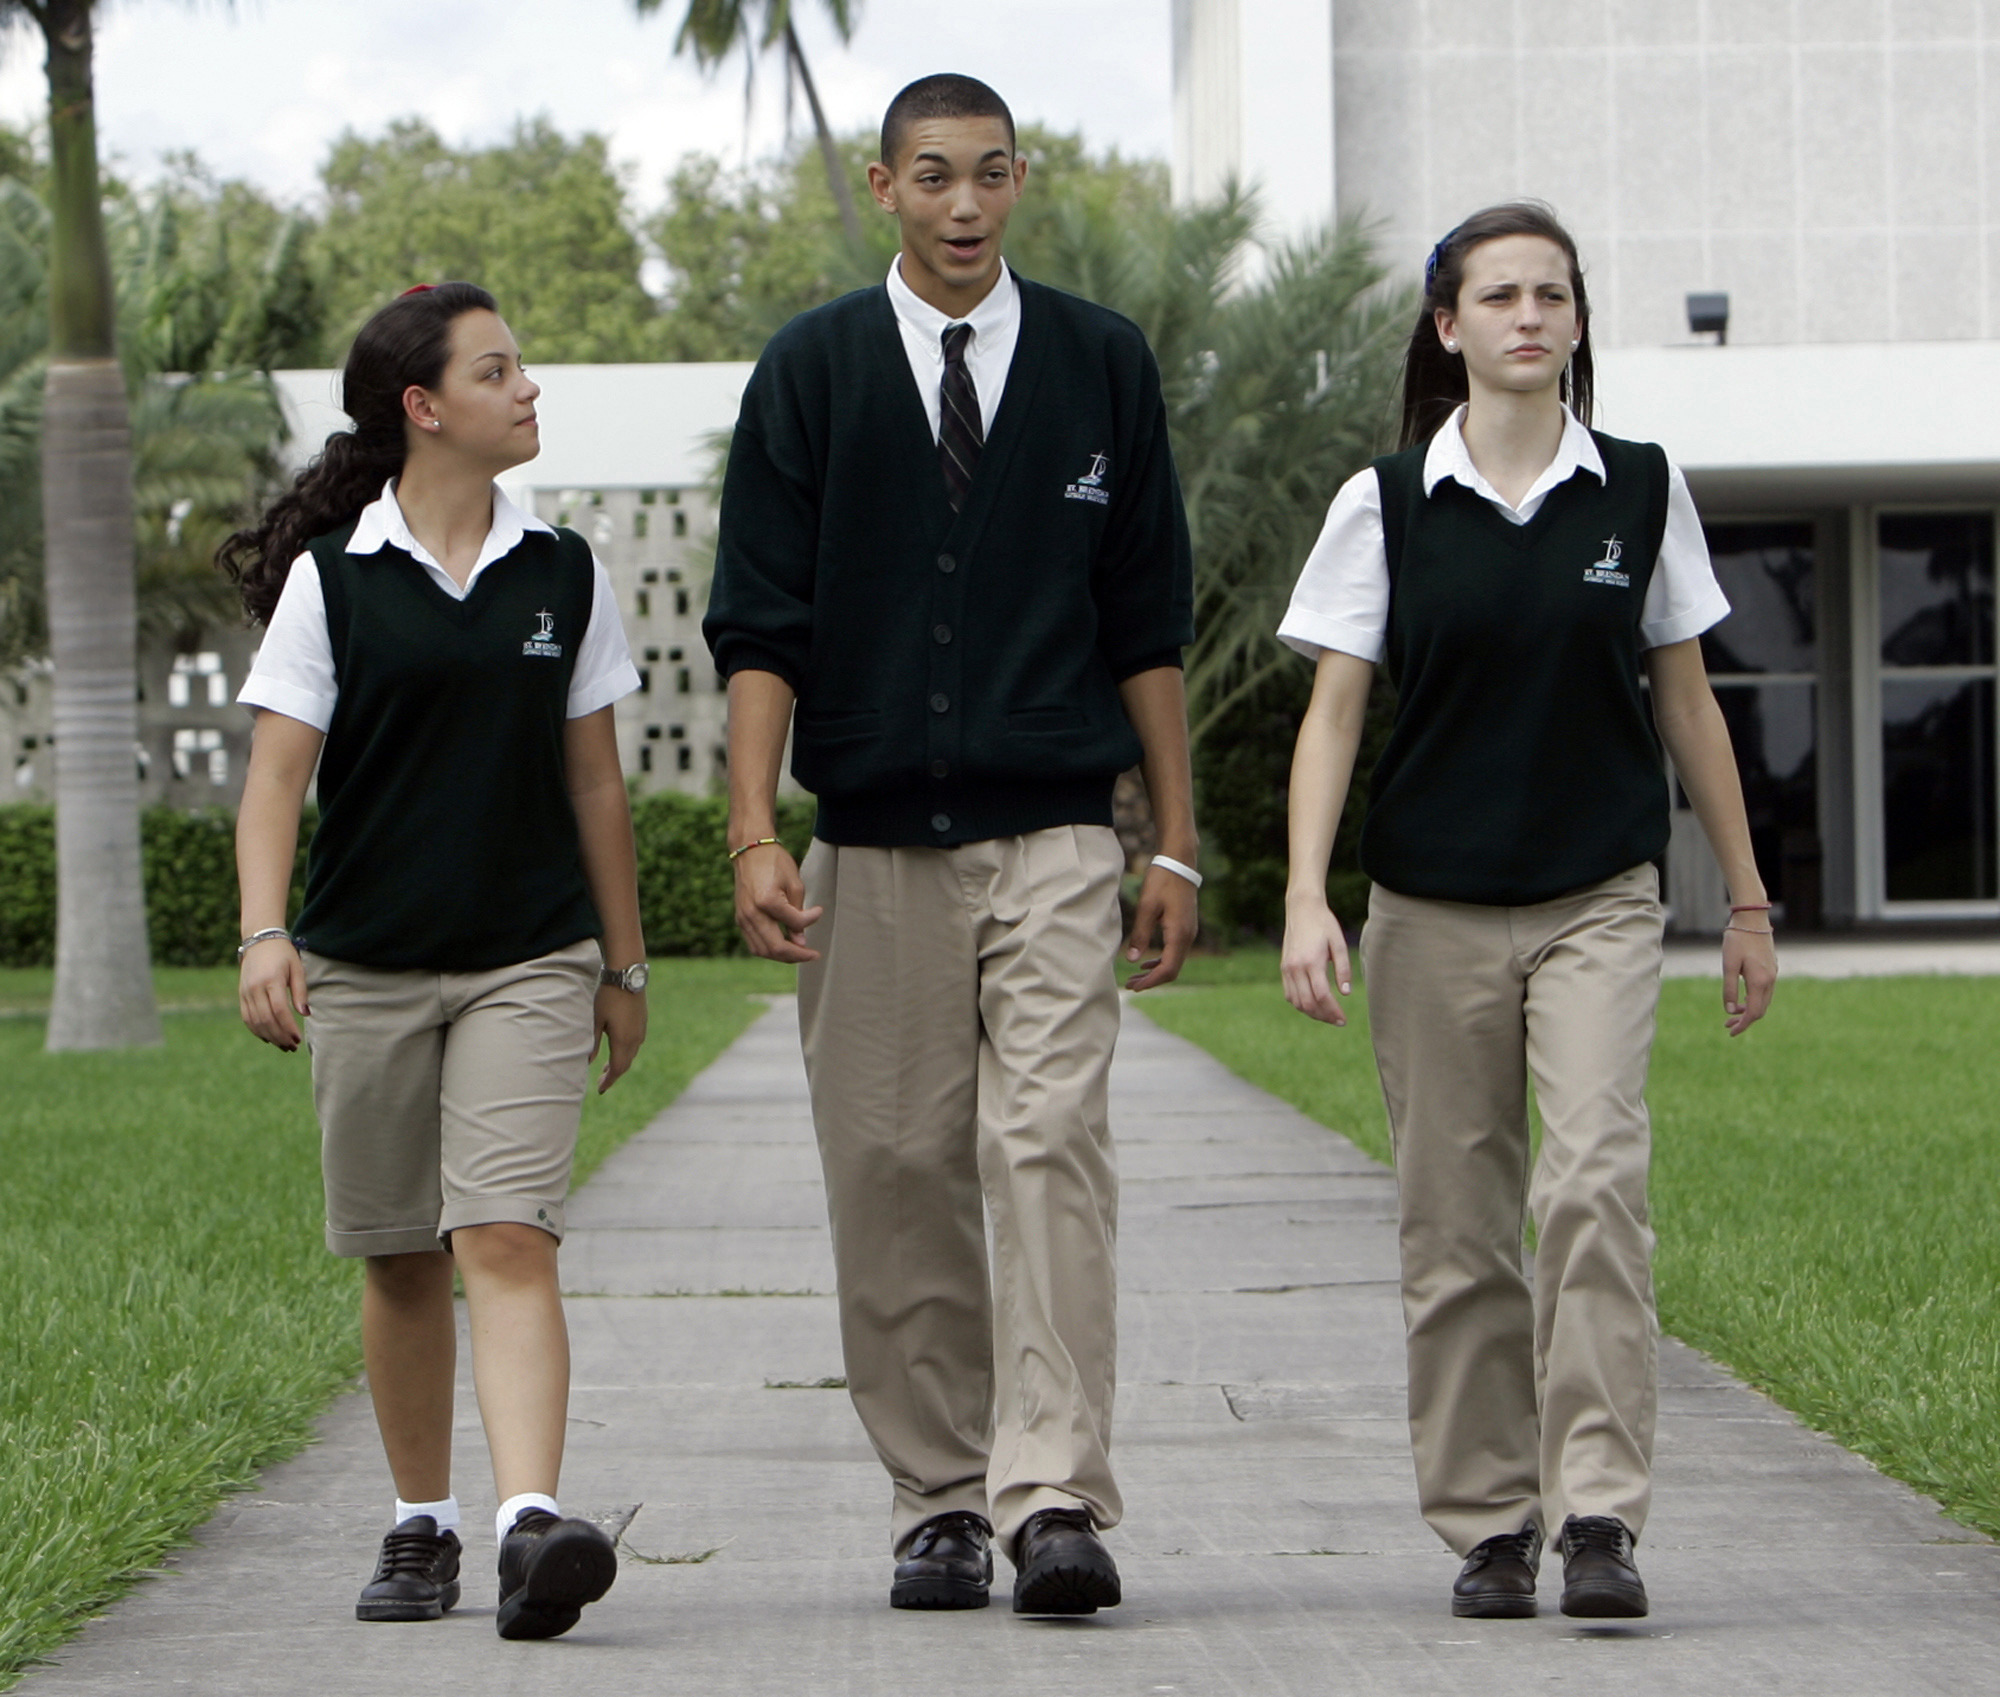 uniforms for public schools essay Argumentative persuasive education essays - the importance of uniforms in public schools.